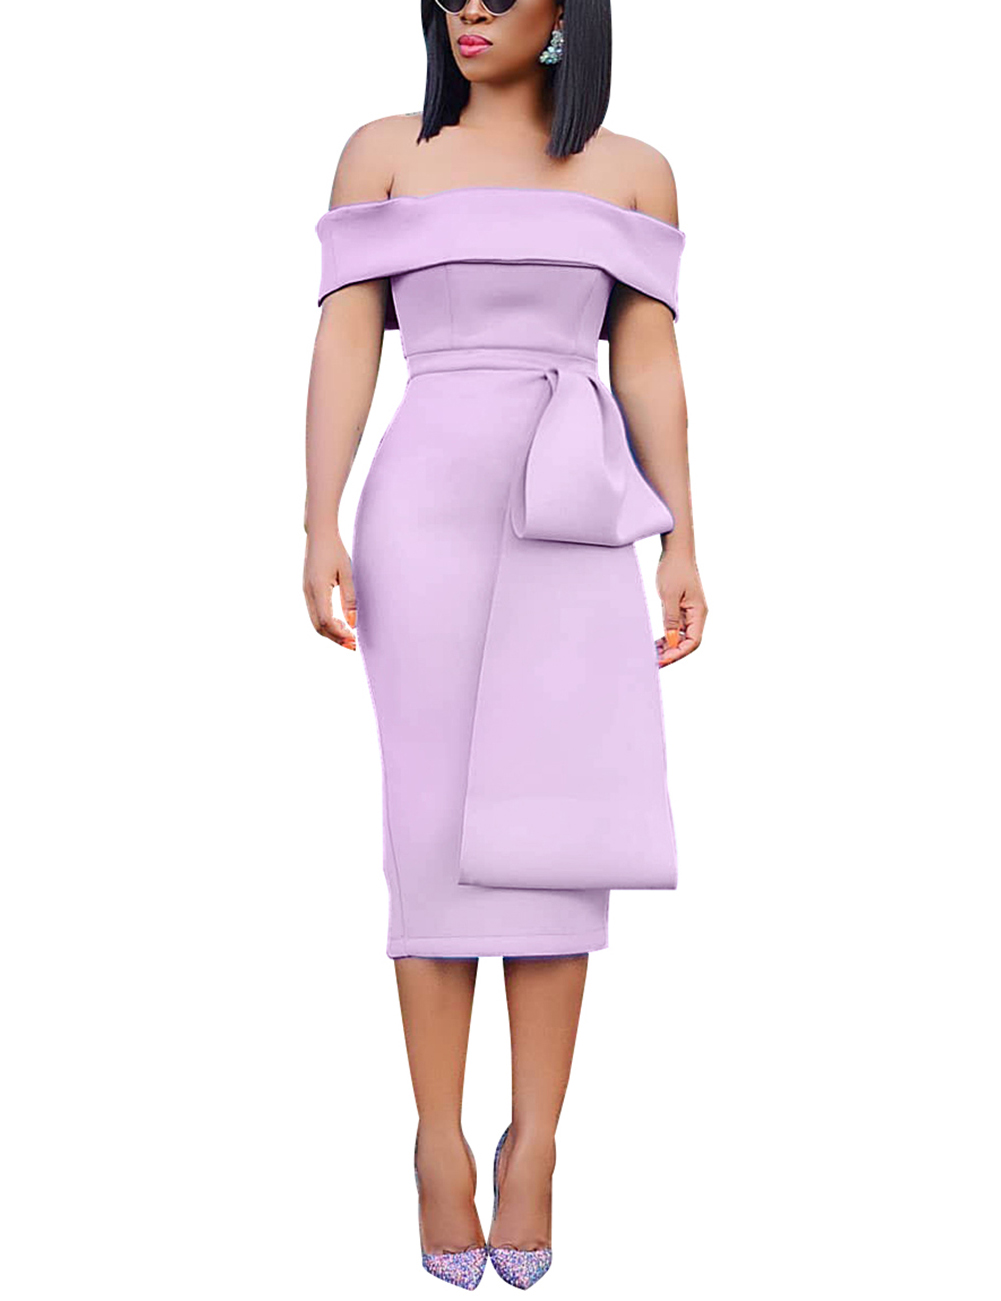 //cdn.affectcloud.com/hexinfashion/upload/imgs/Dress/Bodycon_Dress/VZ190316-PL3/VZ190316-PL3-201911055dc134b05114c.jpg